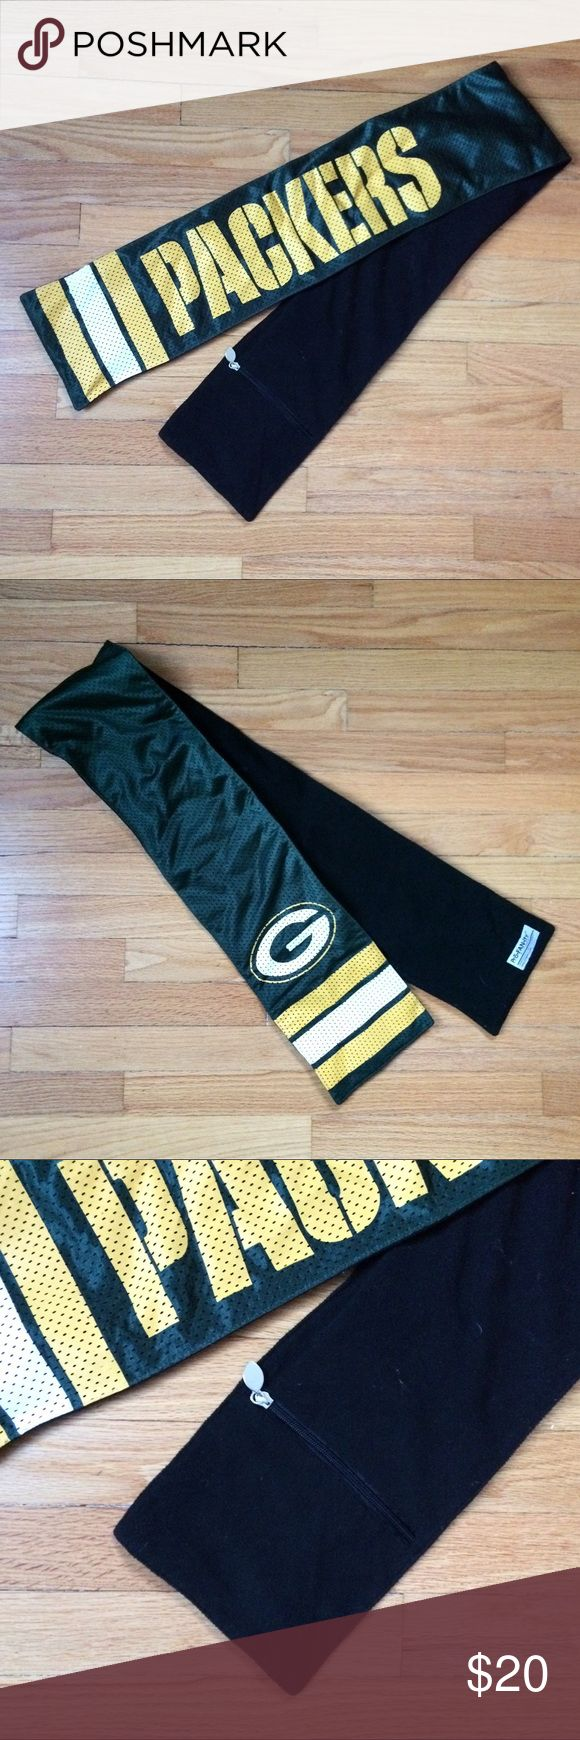 Stylish Green Bay Packers Scarf Stylish Green Bay Packers scarf. Jersey style on the outside with fleece on the inside!! Also has a pocket zipper on the inside. New condition!! Other